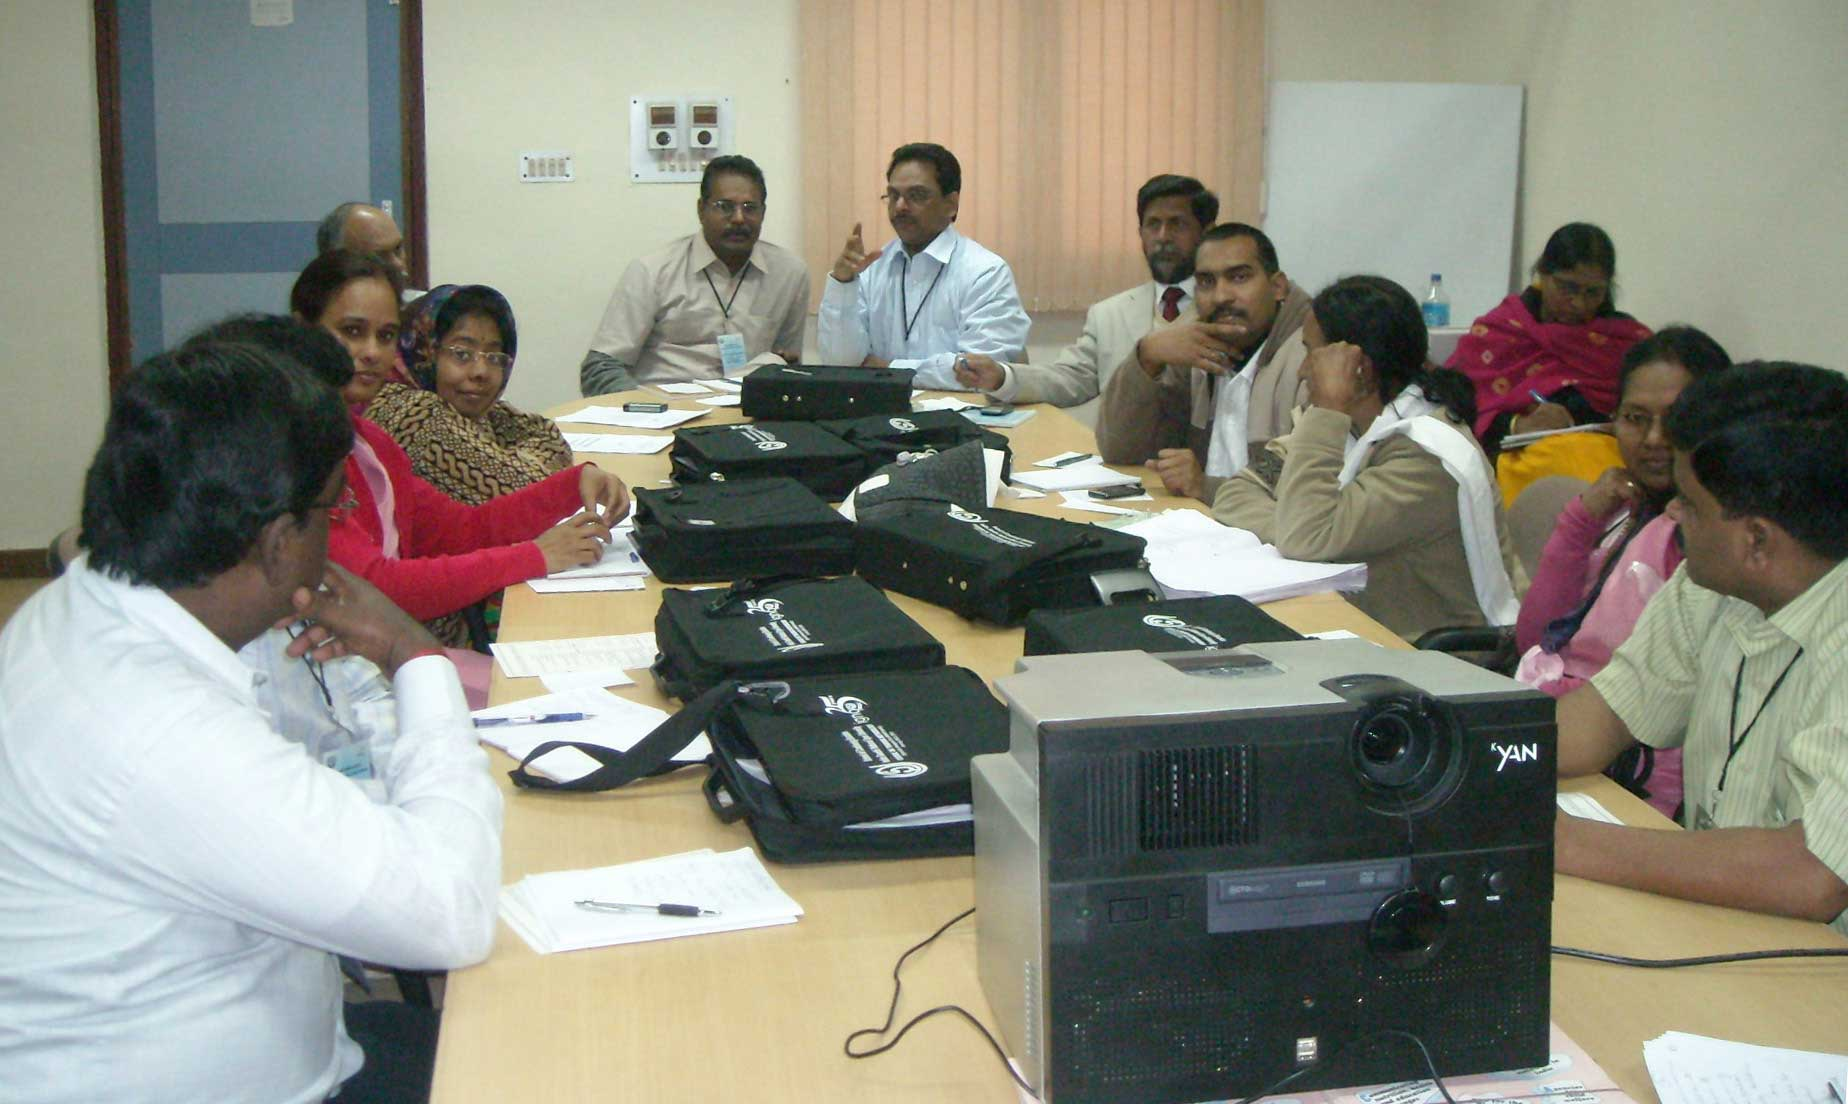 The IGNOU School of Continuing Education during a meeting.